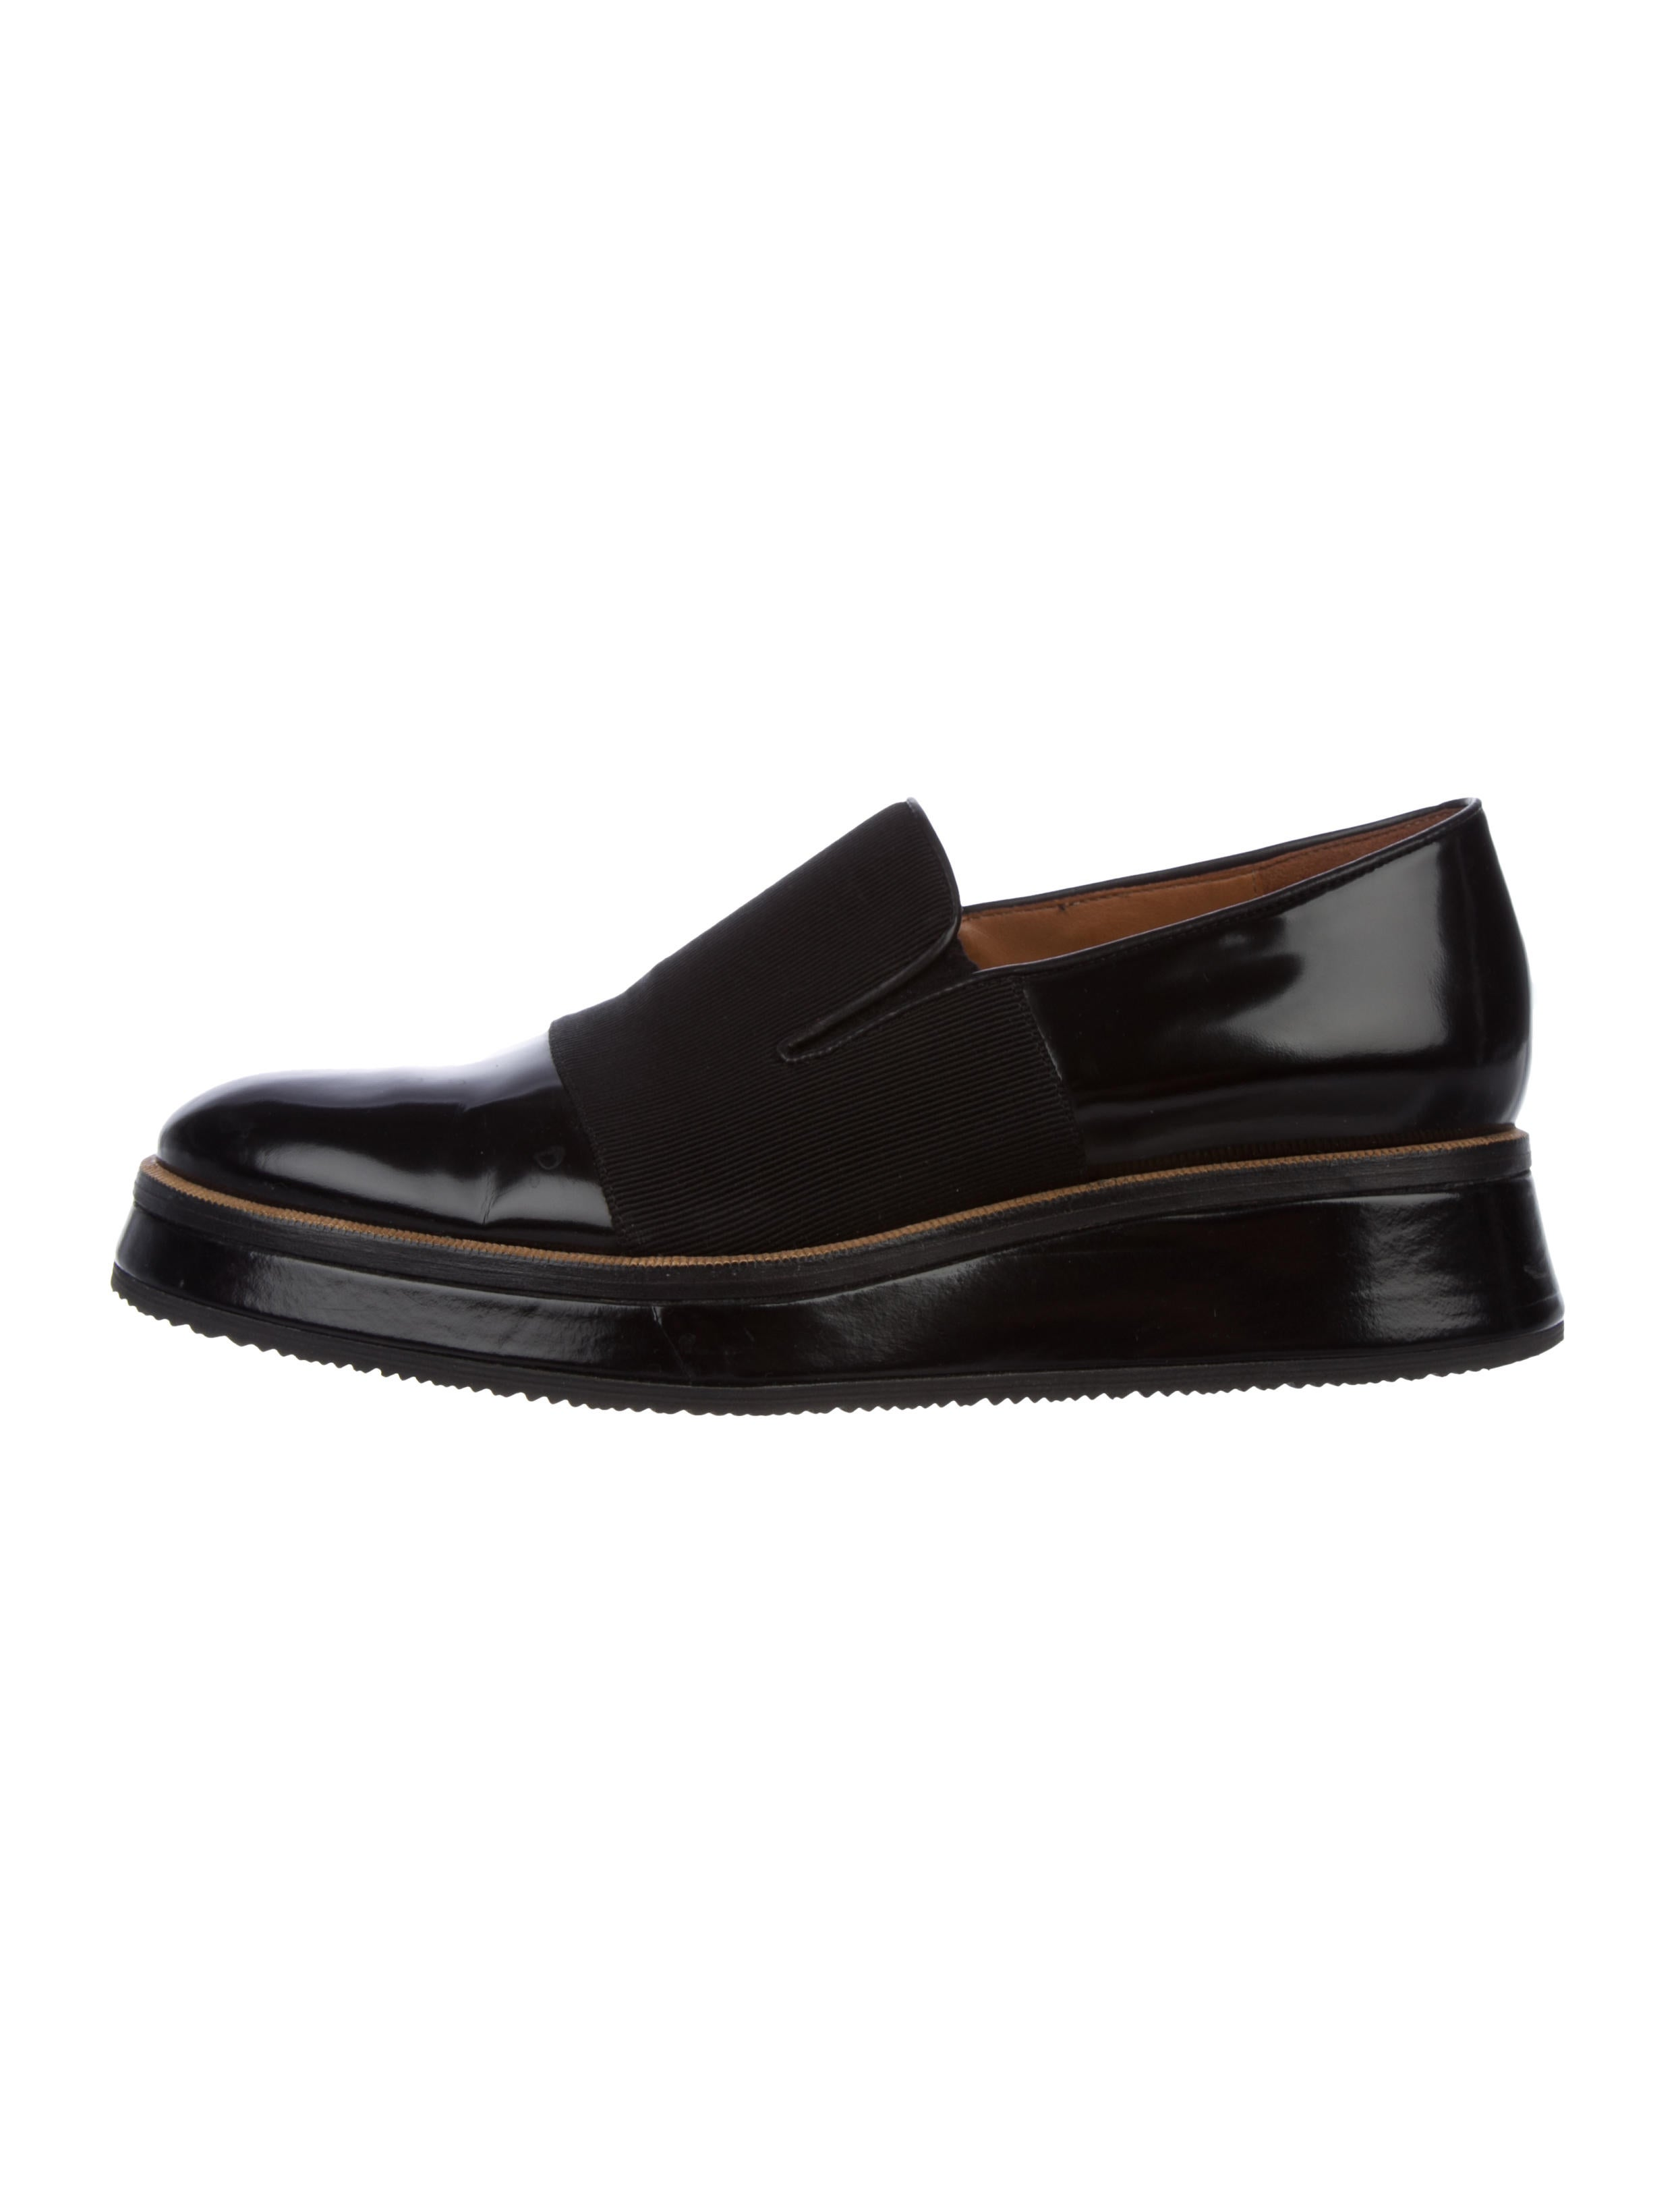 6b3a6a43c60 Dries Van Noten Leather Round-Toe Loafers - Shoes - DRI48283